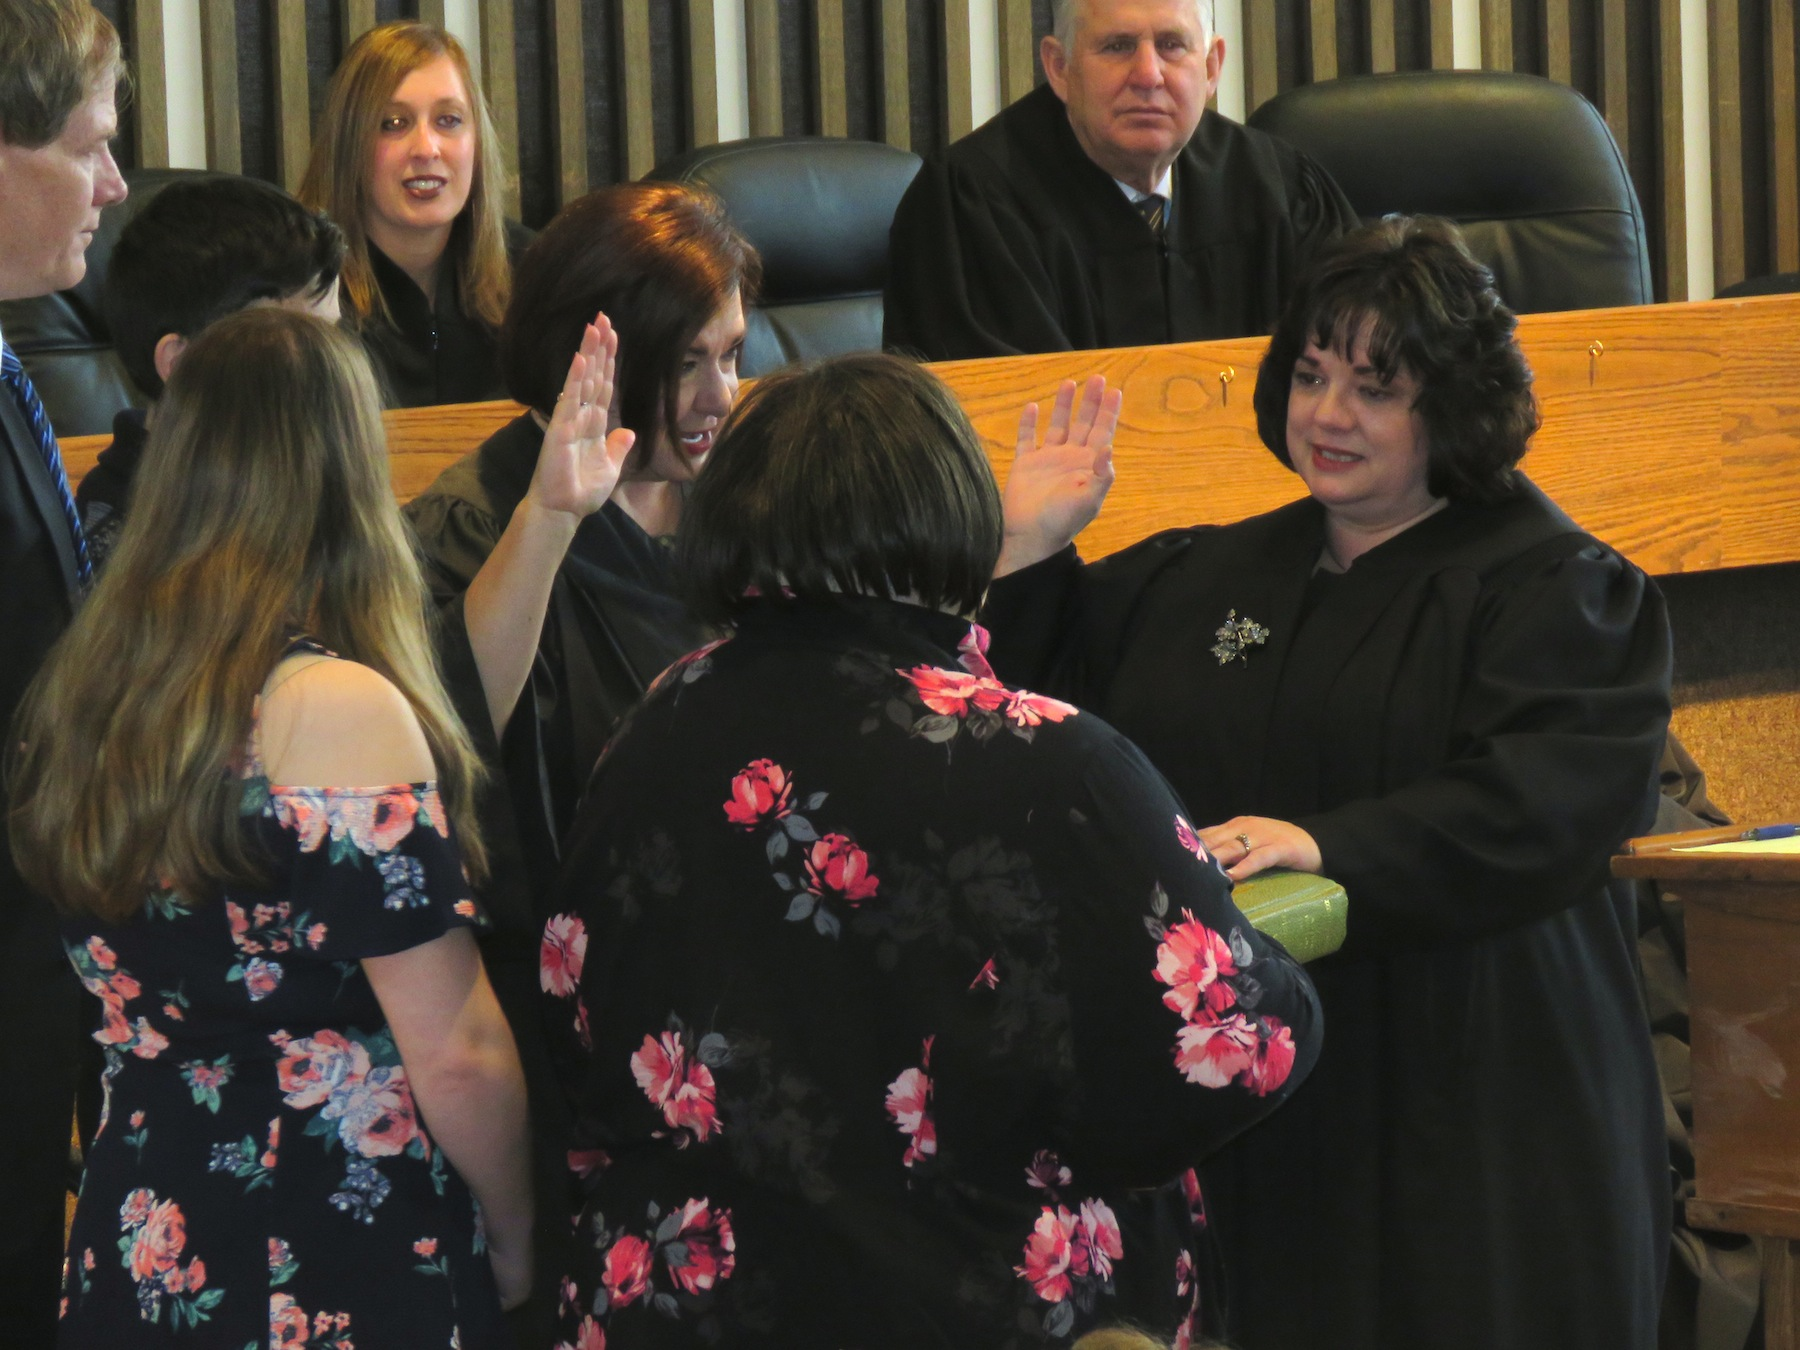 Angela Stamm-Philipps become sworn in as Wheatfield town justice by Niagara County Judge Sara Sheldon as Stamm-Philipps' mother, Audrey Stamm, holds the Bible. (Photos by David Yarger)